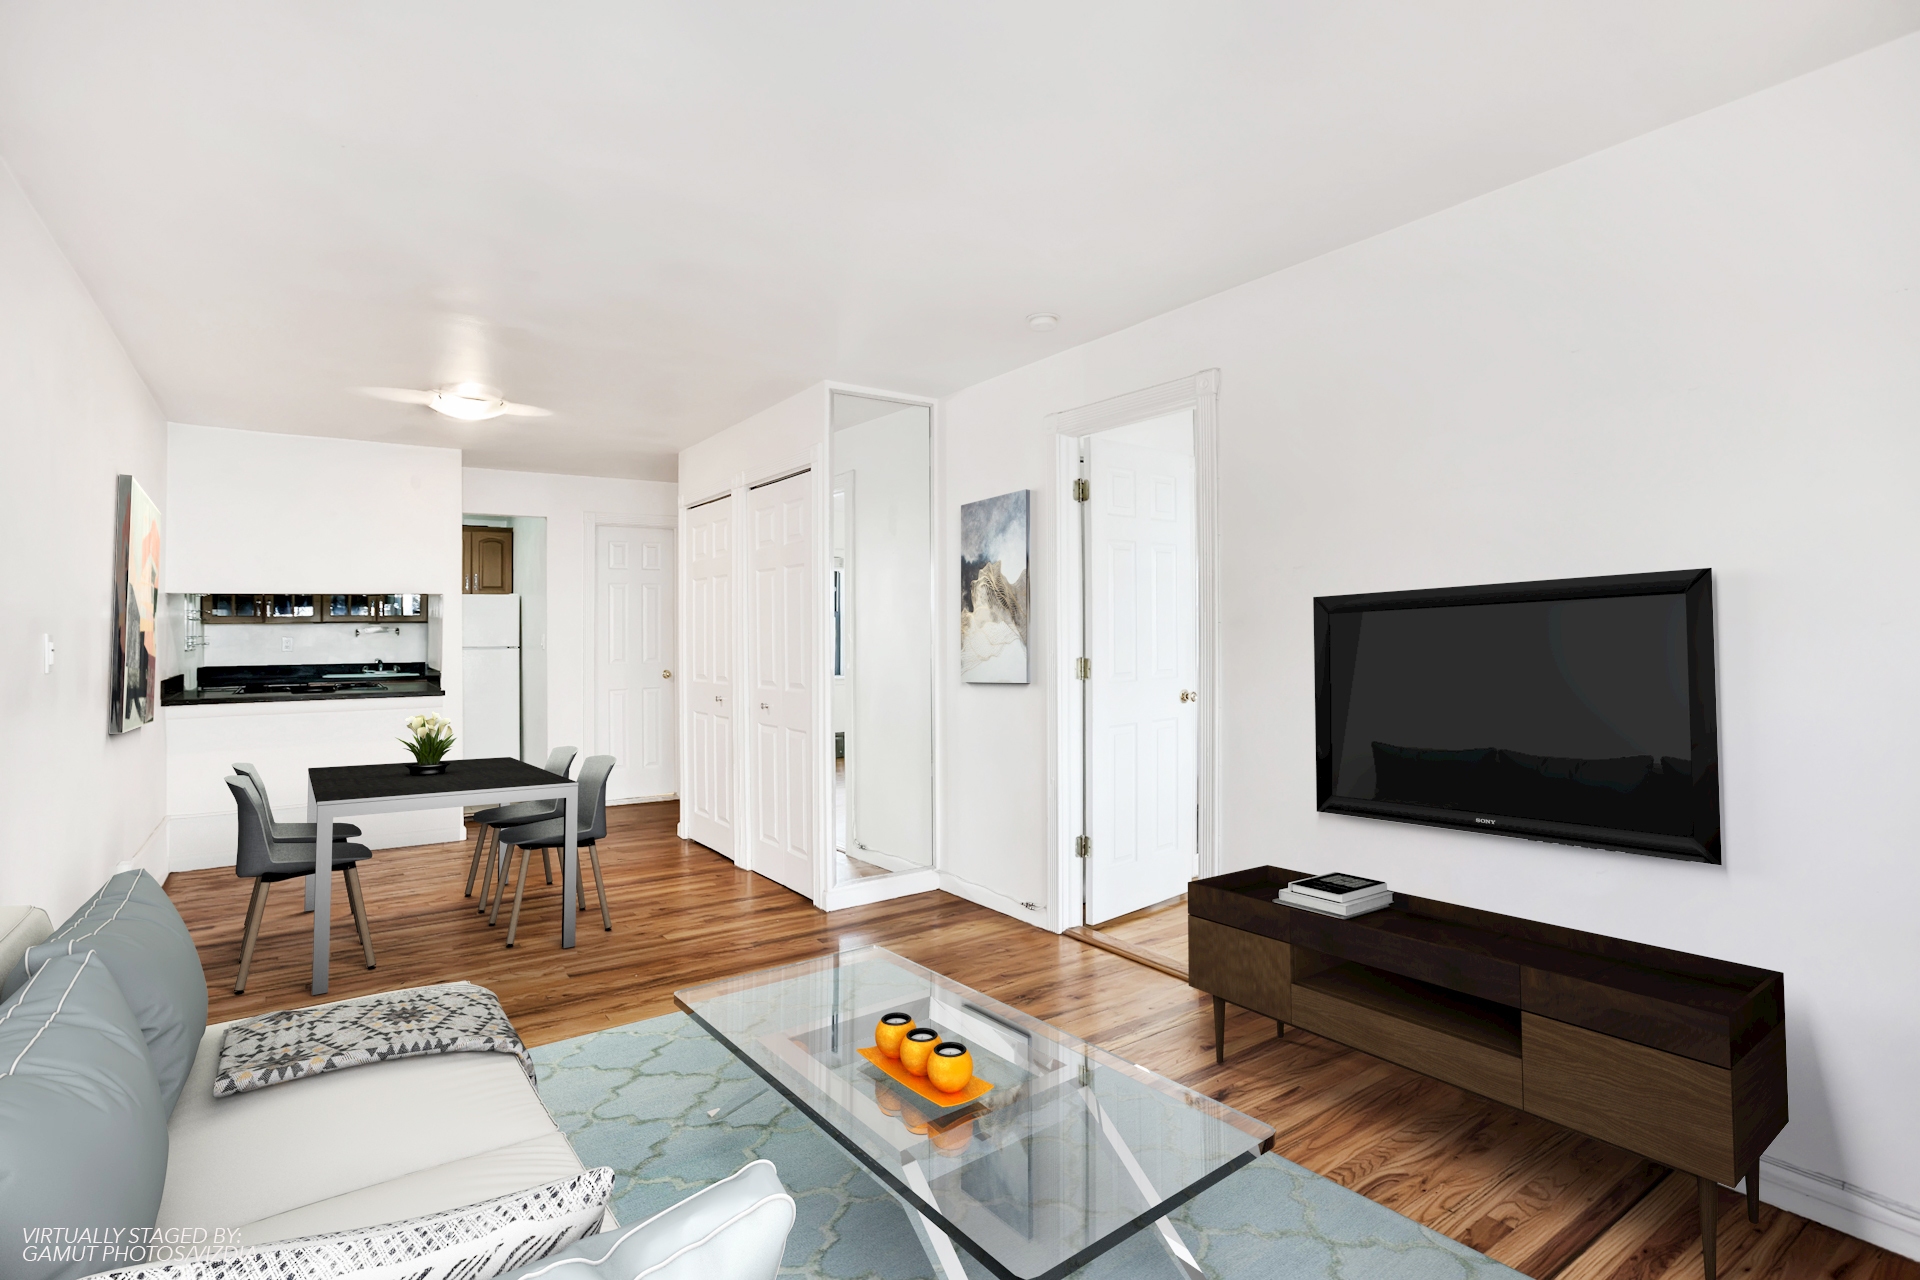 424 West 49th Street, Unit 3A - $790,000